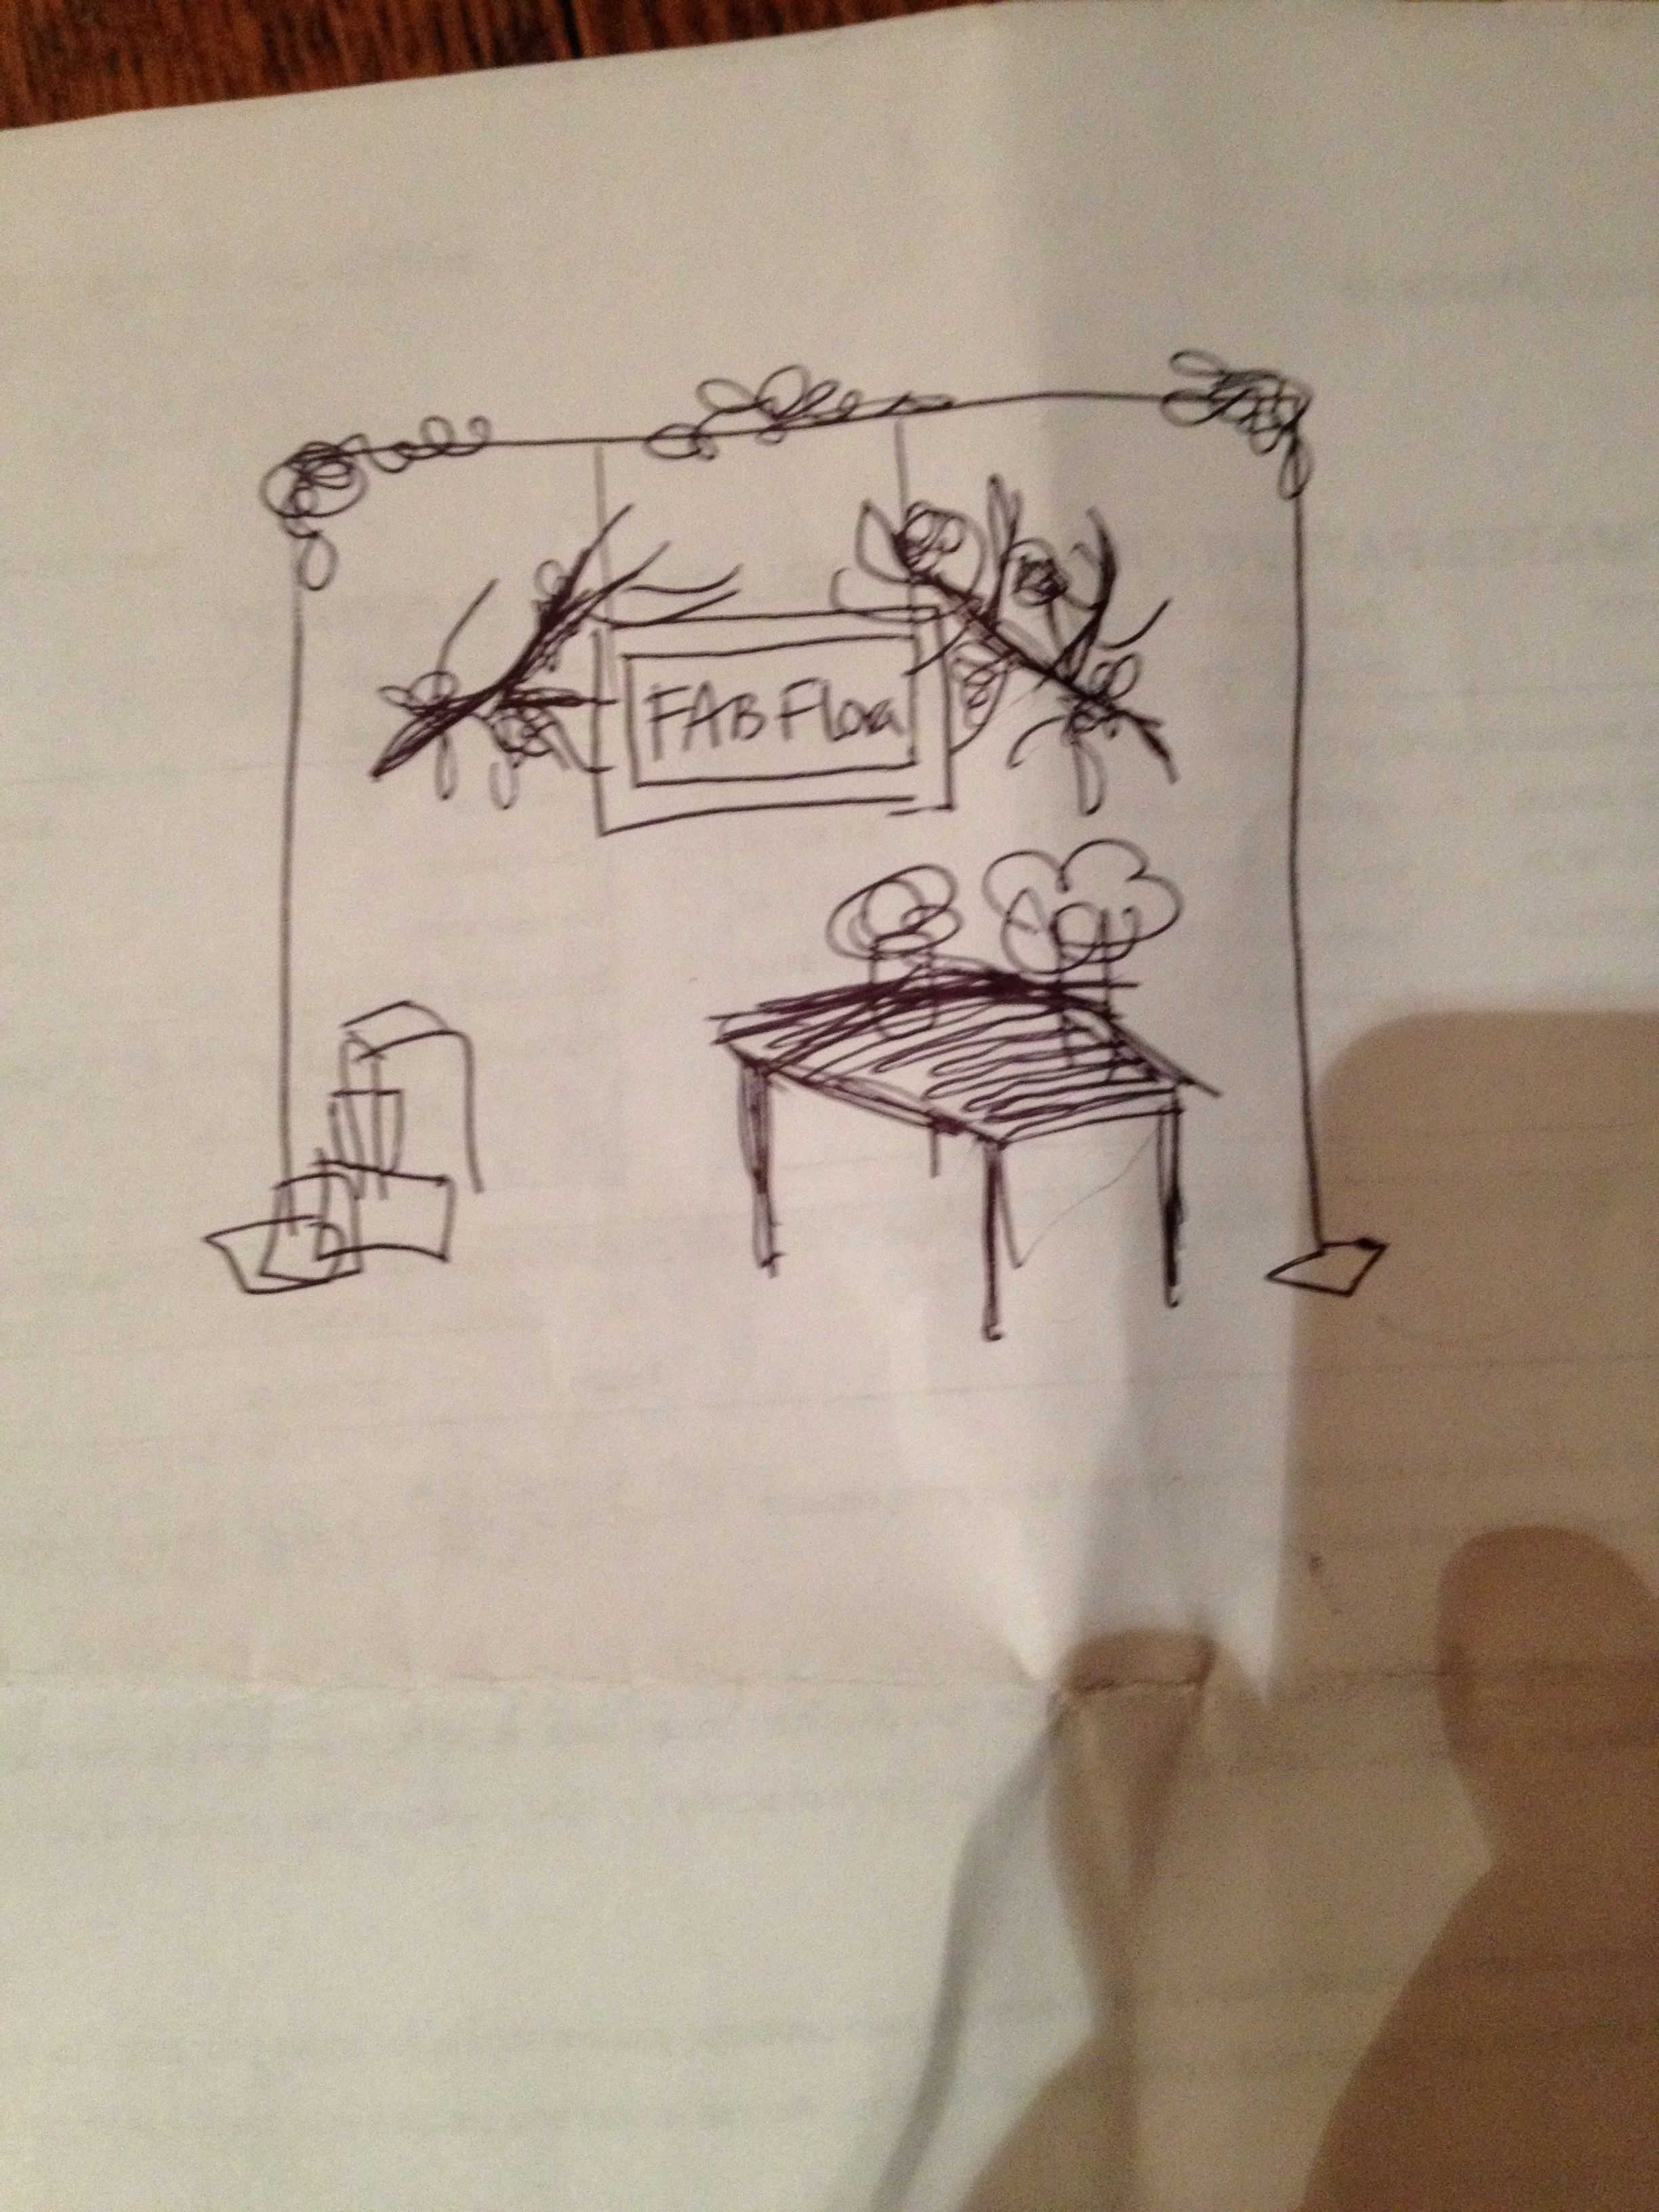 The booth layout sketch